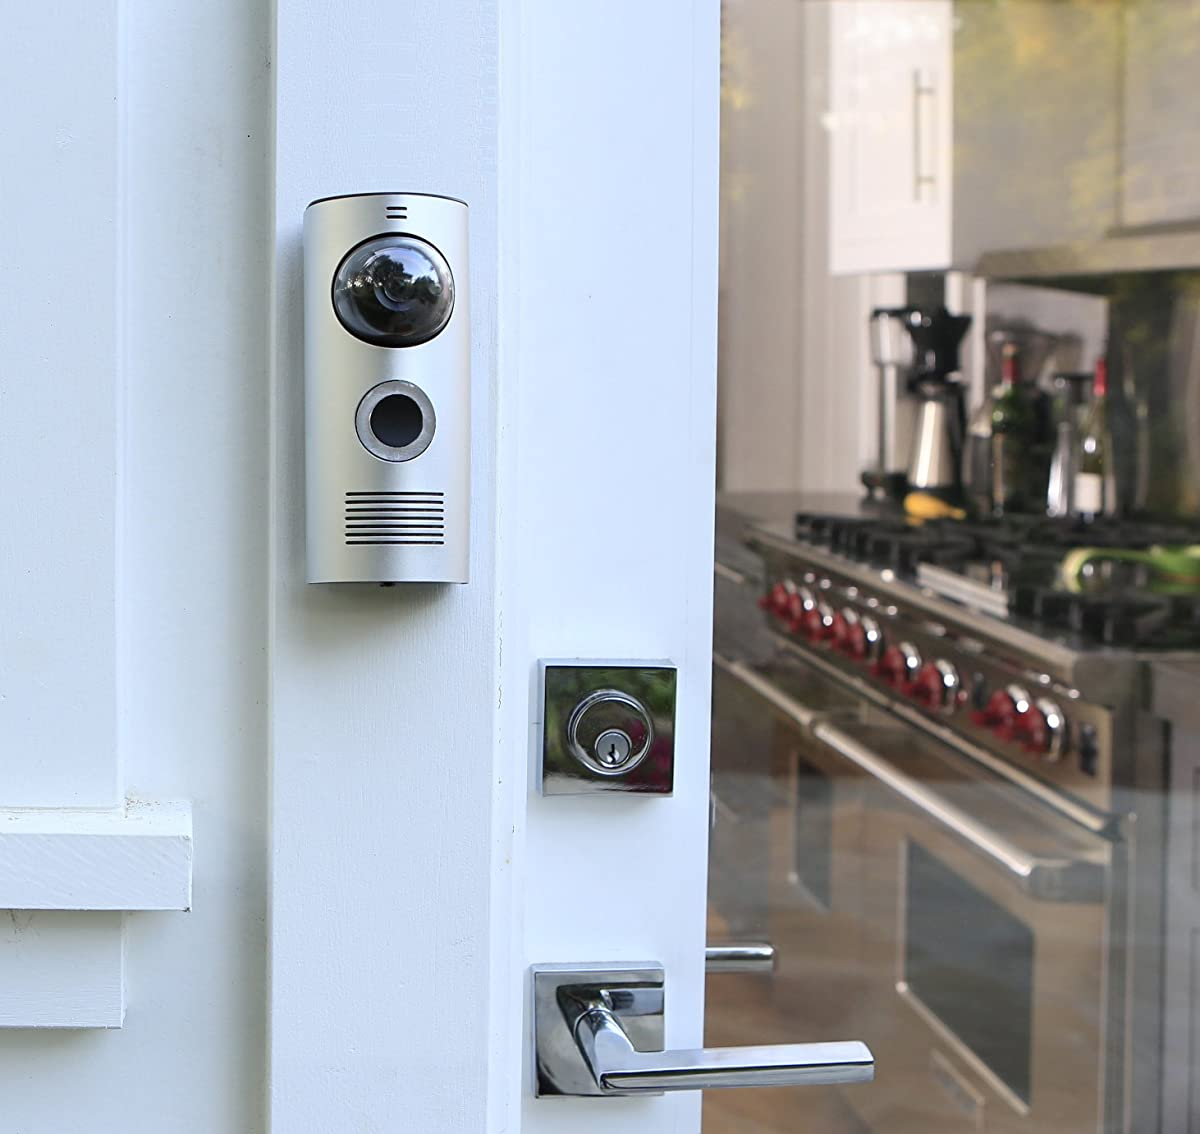 Doorbot Wi-Fi Enabled Smart Doorbell (Discontinued by Manufacturer)